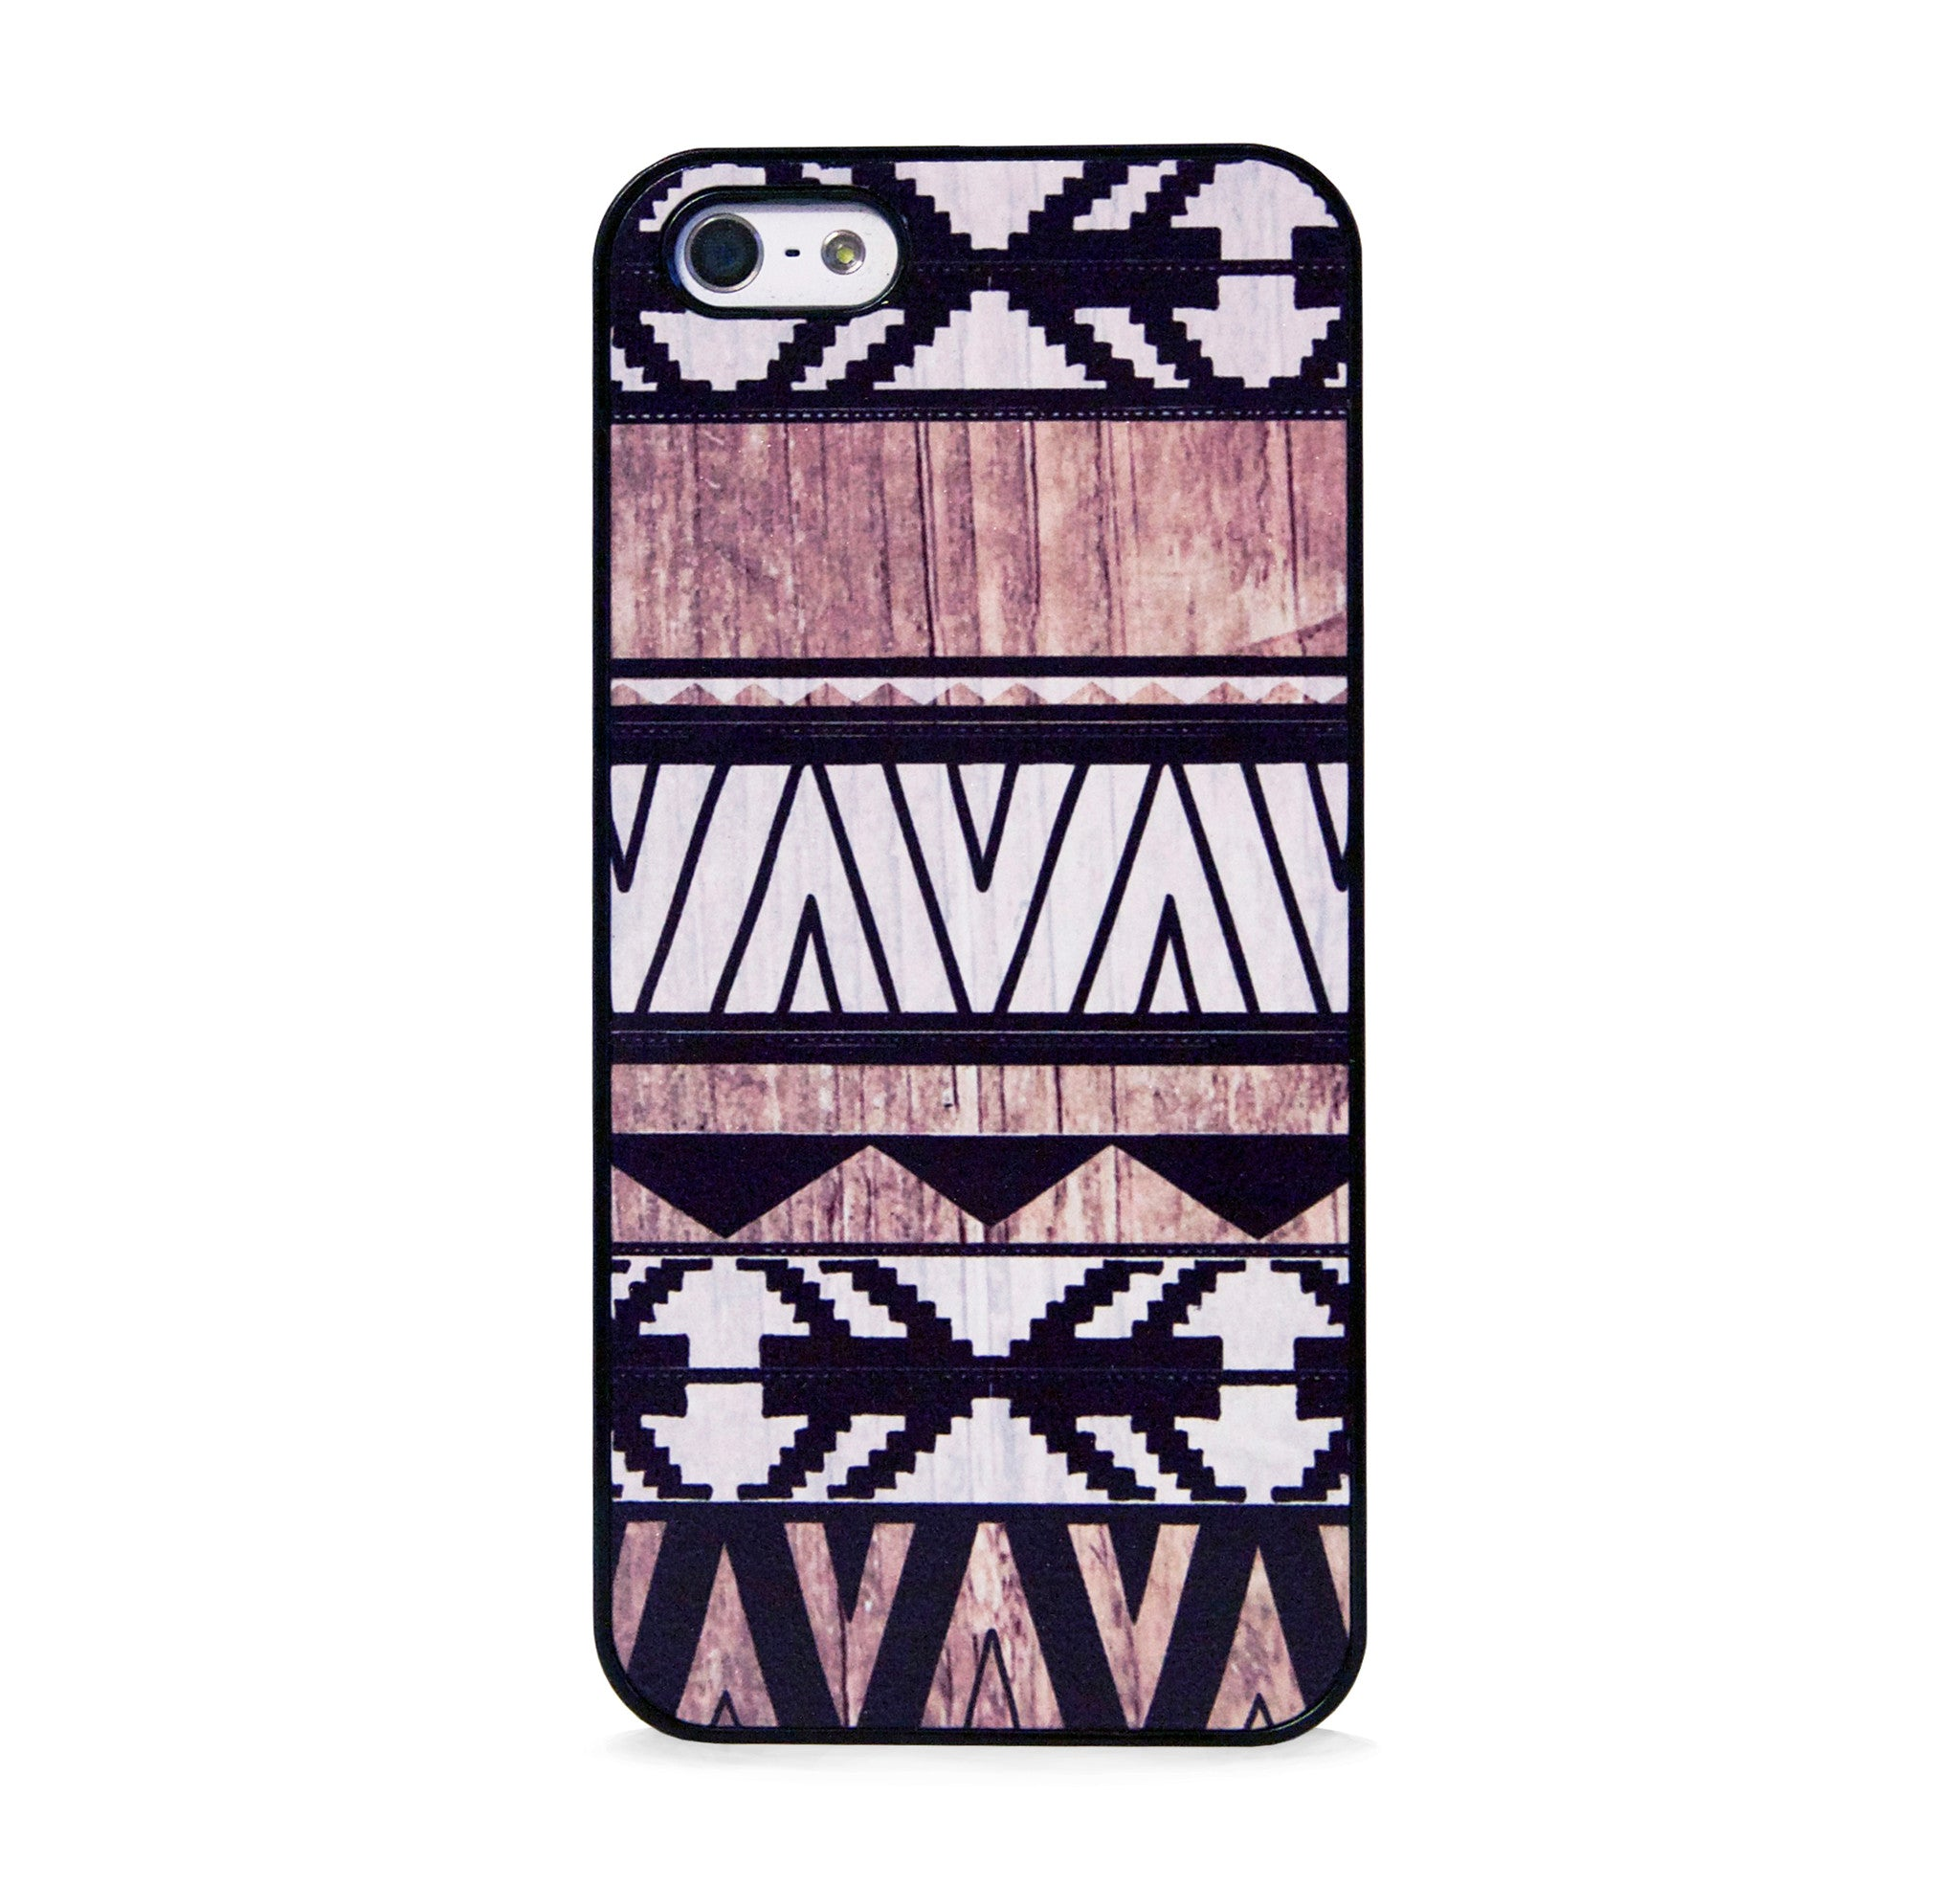 AZTEC GEO WHITE WOOD PRINT IPHONE 5/5S CASE